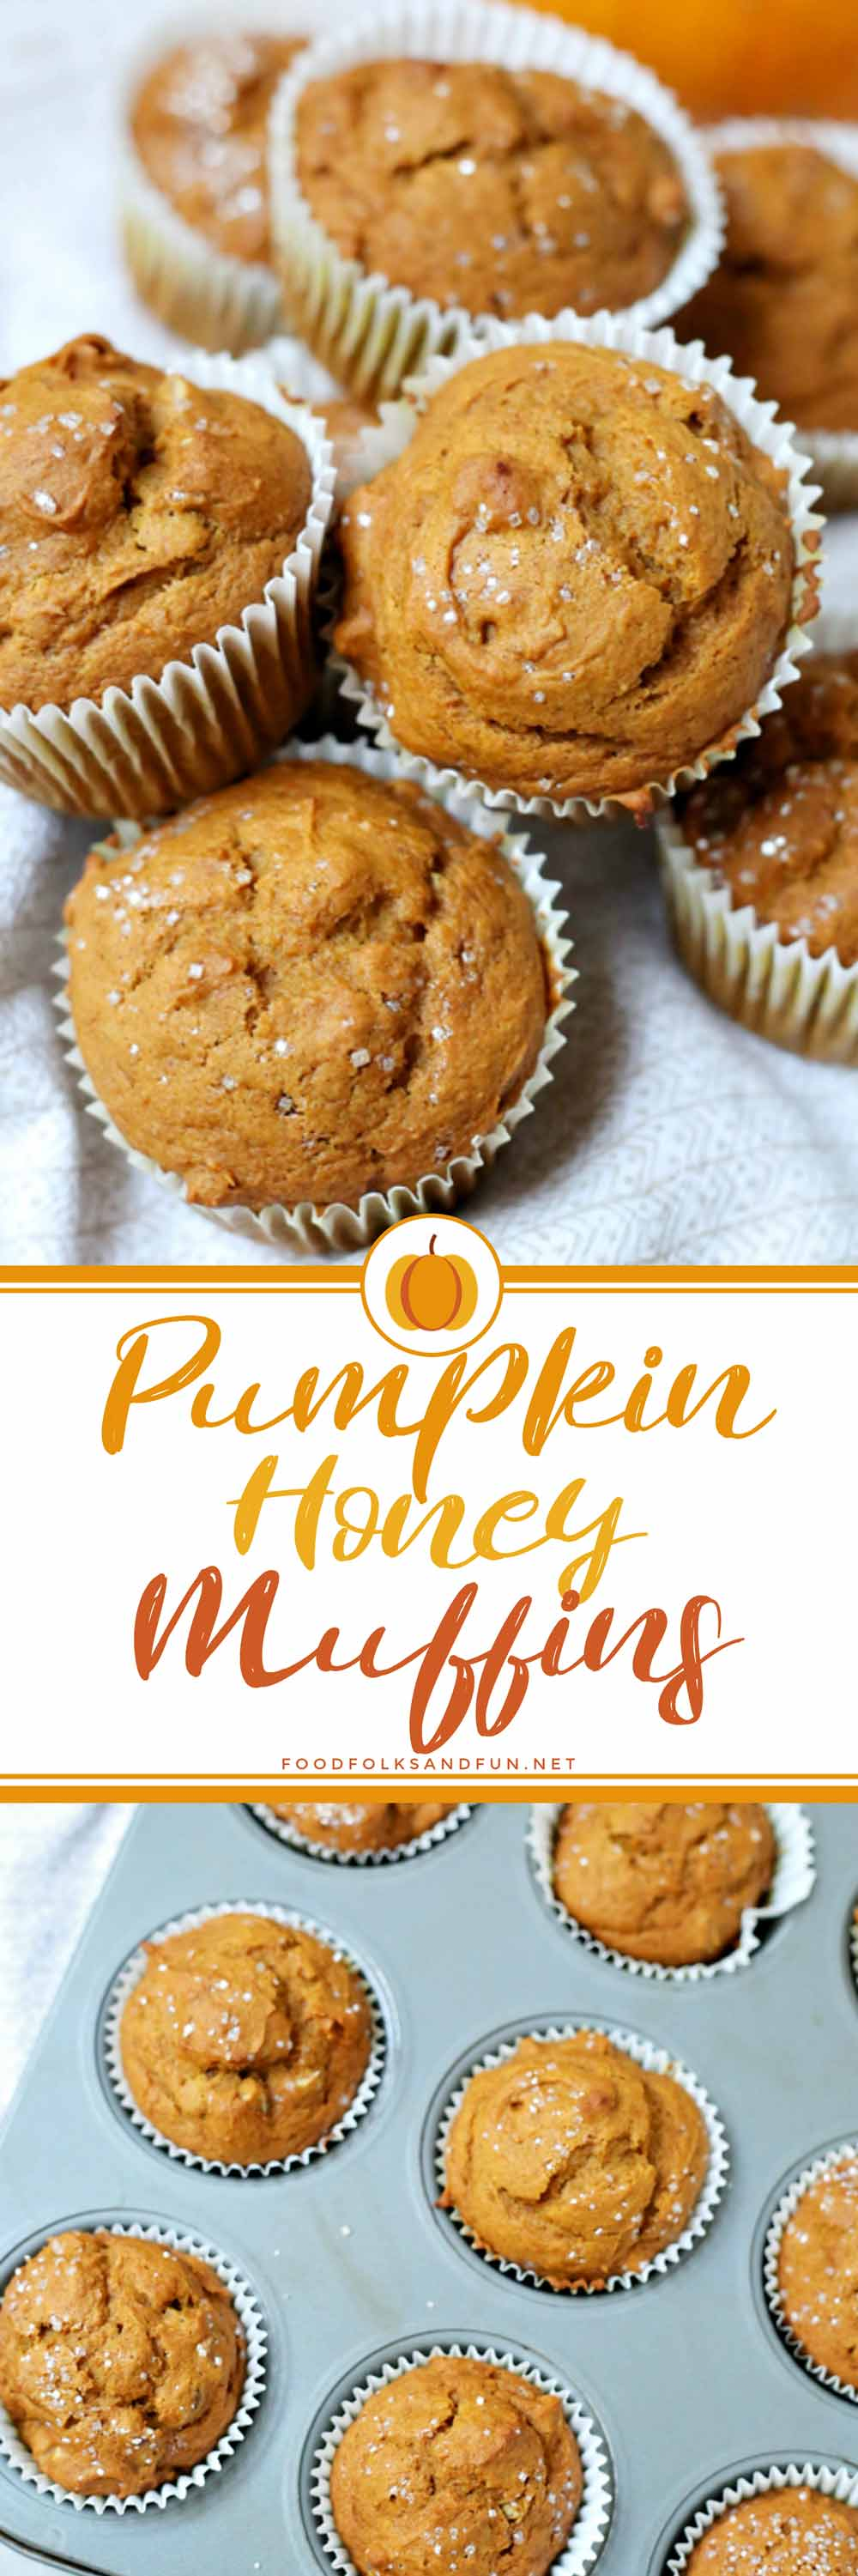 These Pumpkin Honey Muffins are easy to make and are made with honey instead of sugar! They're also an easy breakfast option for weekdays or holidays! via @foodfolksandfun